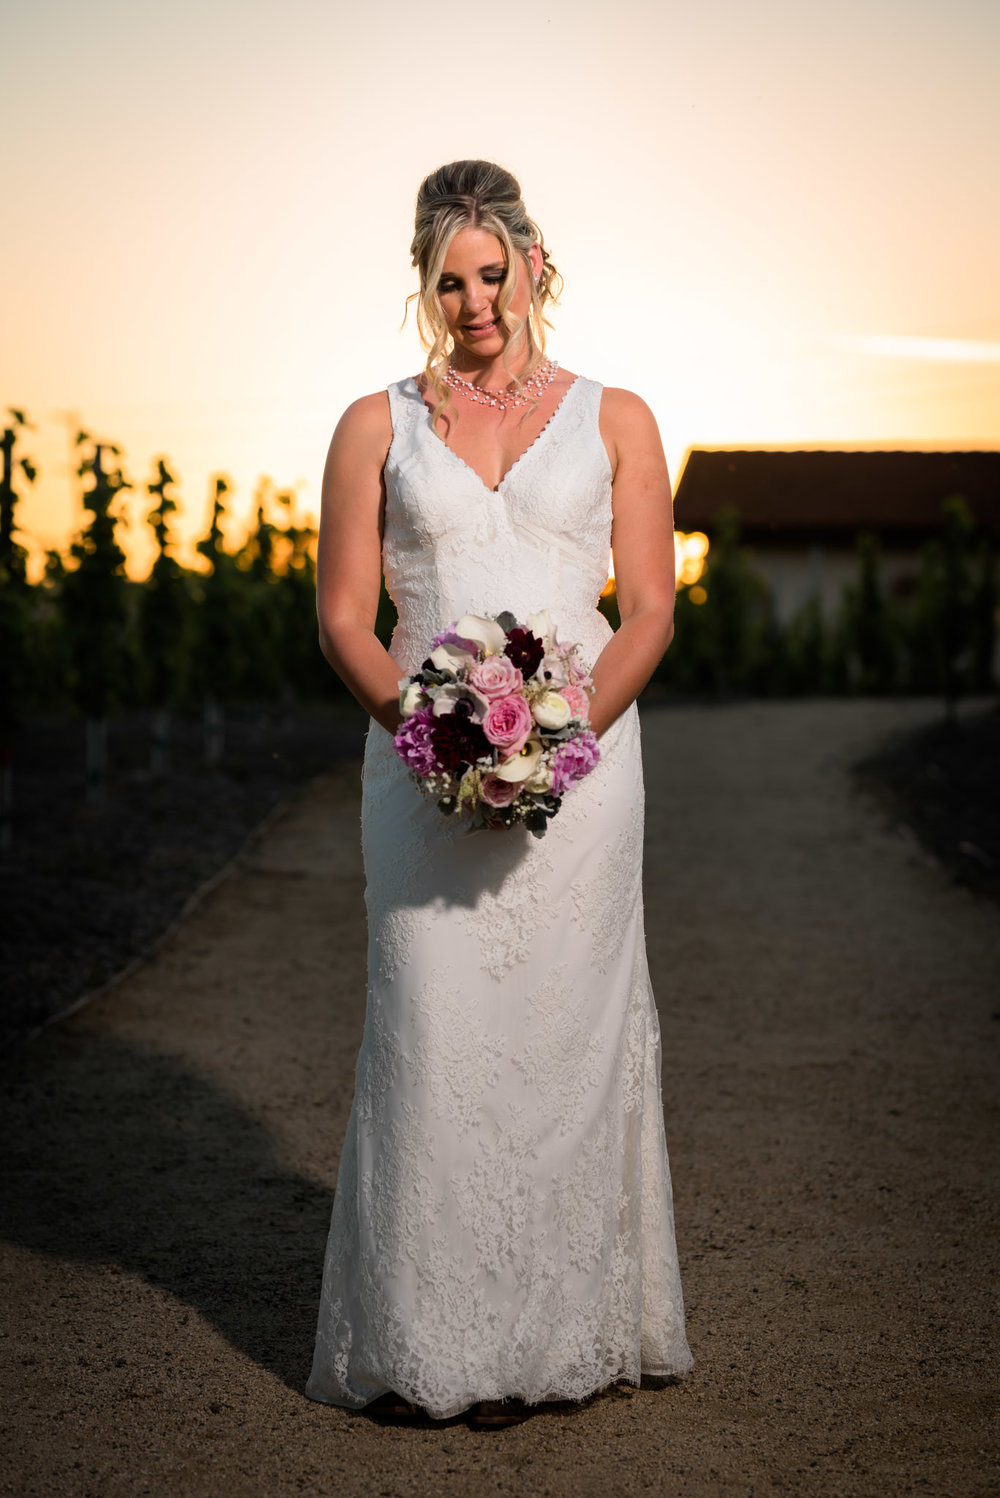 Avensole-Winery-Temecula-Wedding-Josh-and-Olivia-3813.JPG